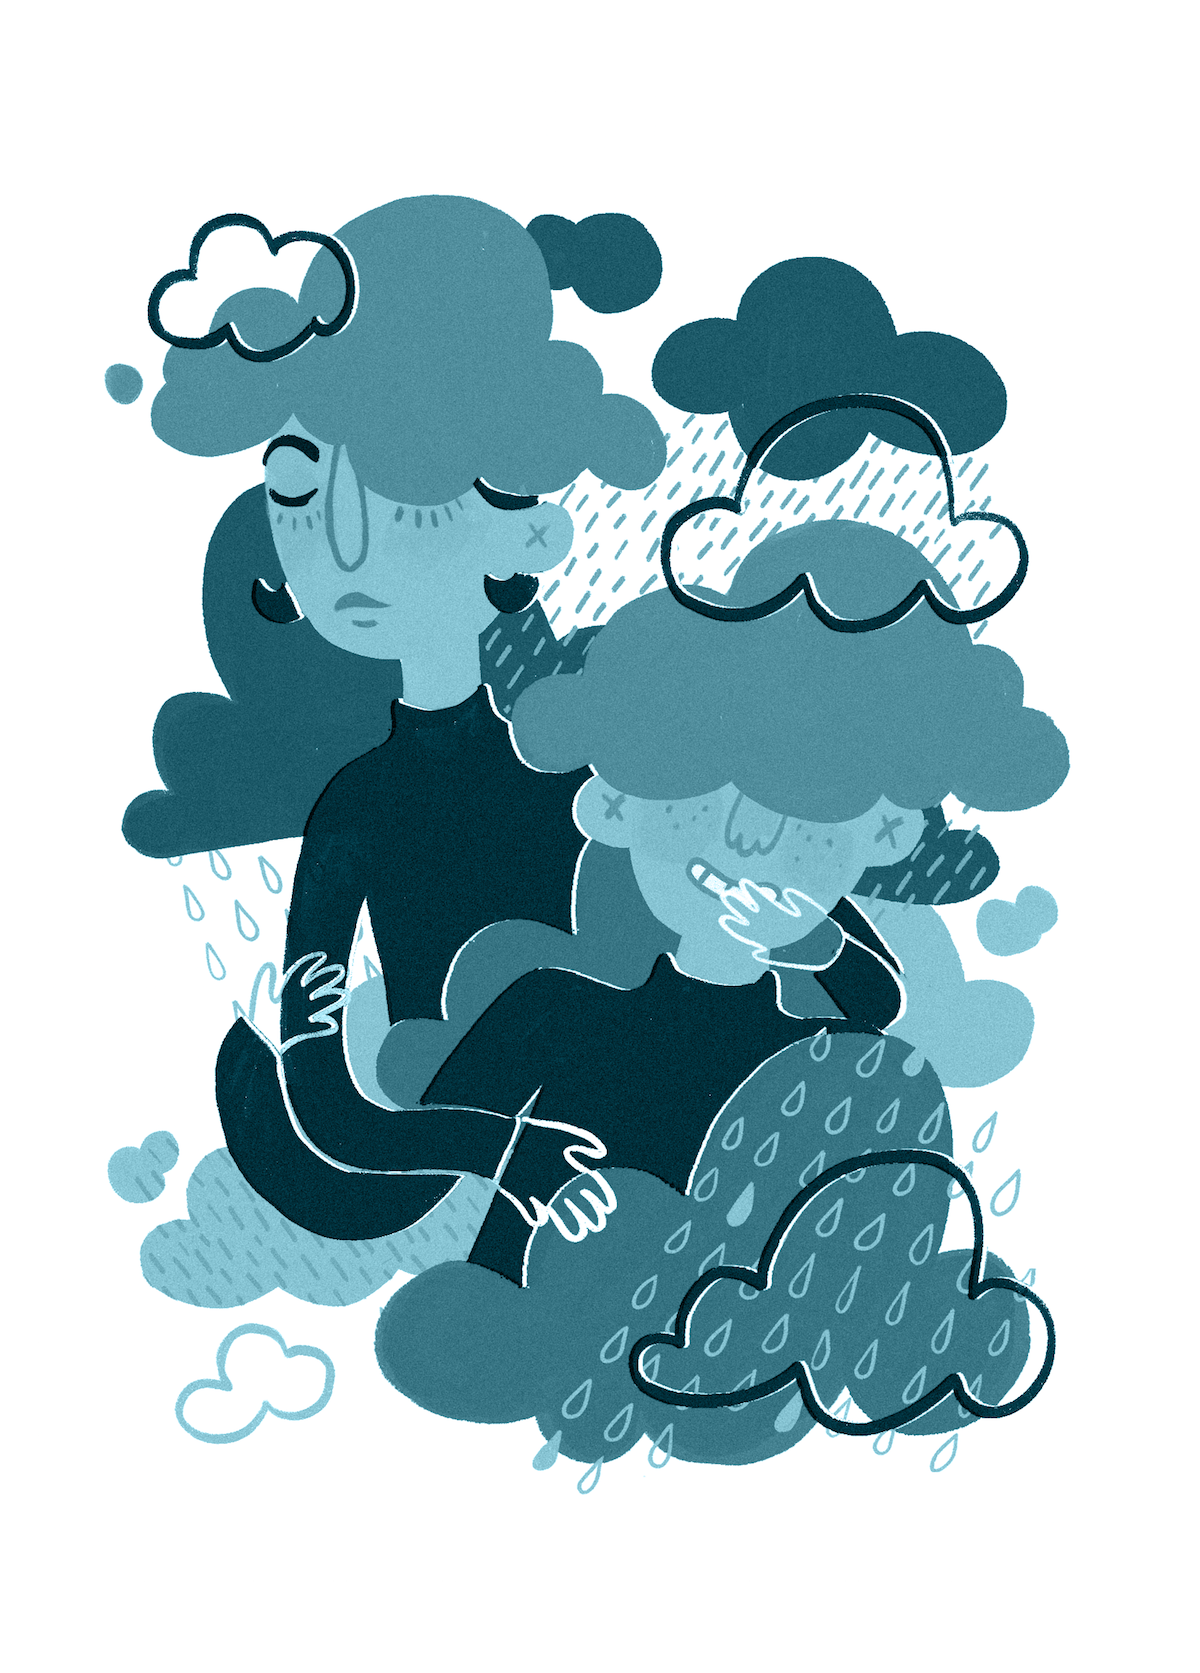 Katya-Austin-Illustration-risograph-cloudy-love-drawing.png